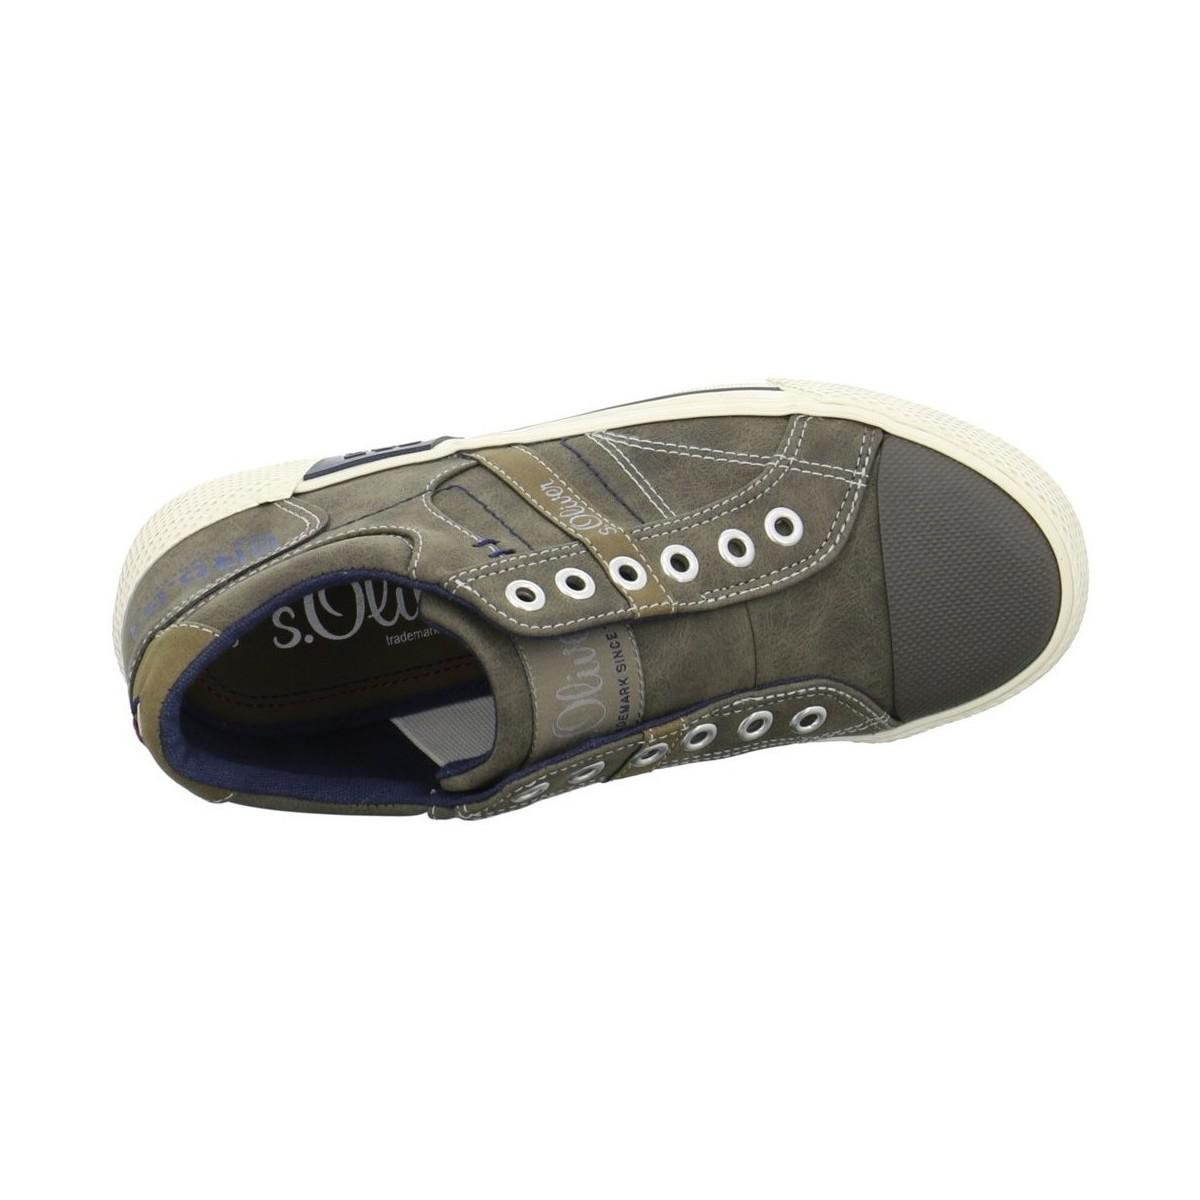 S.oliver Kinder Women's Shoes (trainers) In Grey in Grey